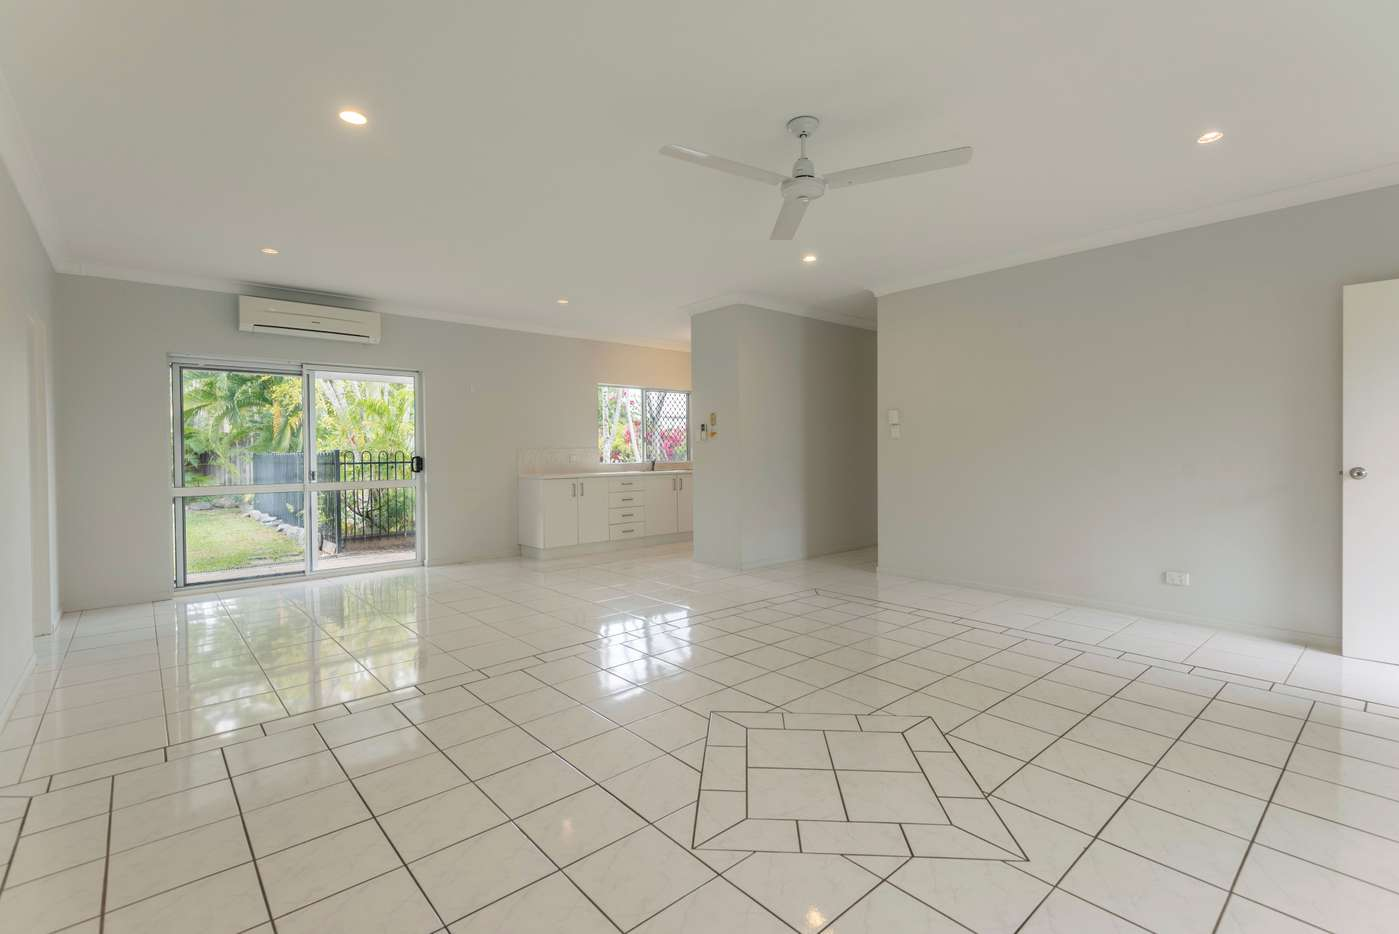 Main view of Homely house listing, 7 Egret Close, Port Douglas, QLD 4877